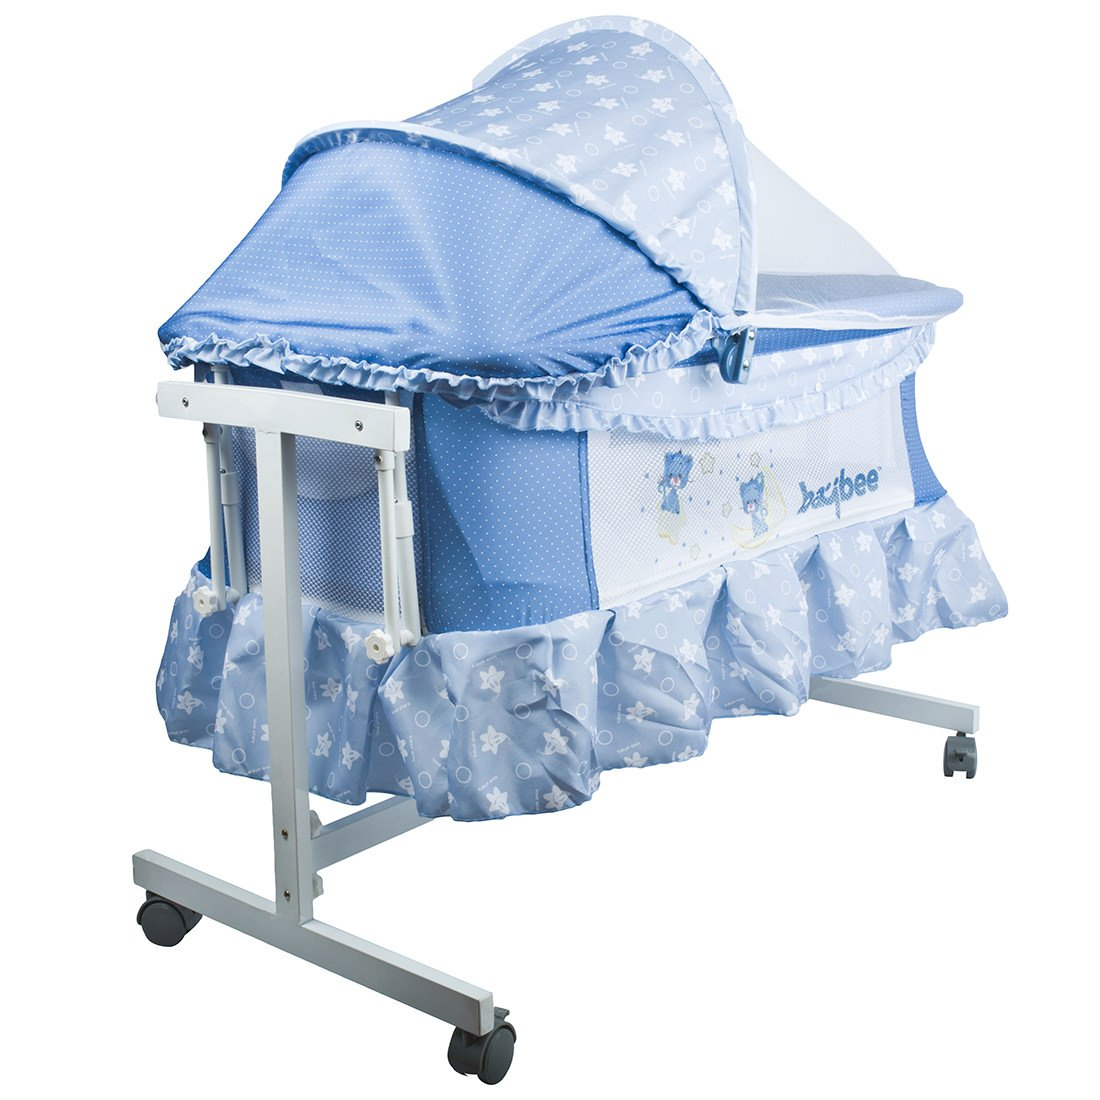 BAYBEE LittleNest Bassinet Cradle with Mosquito Net-Canopy and Wheels (Mixed Colour)